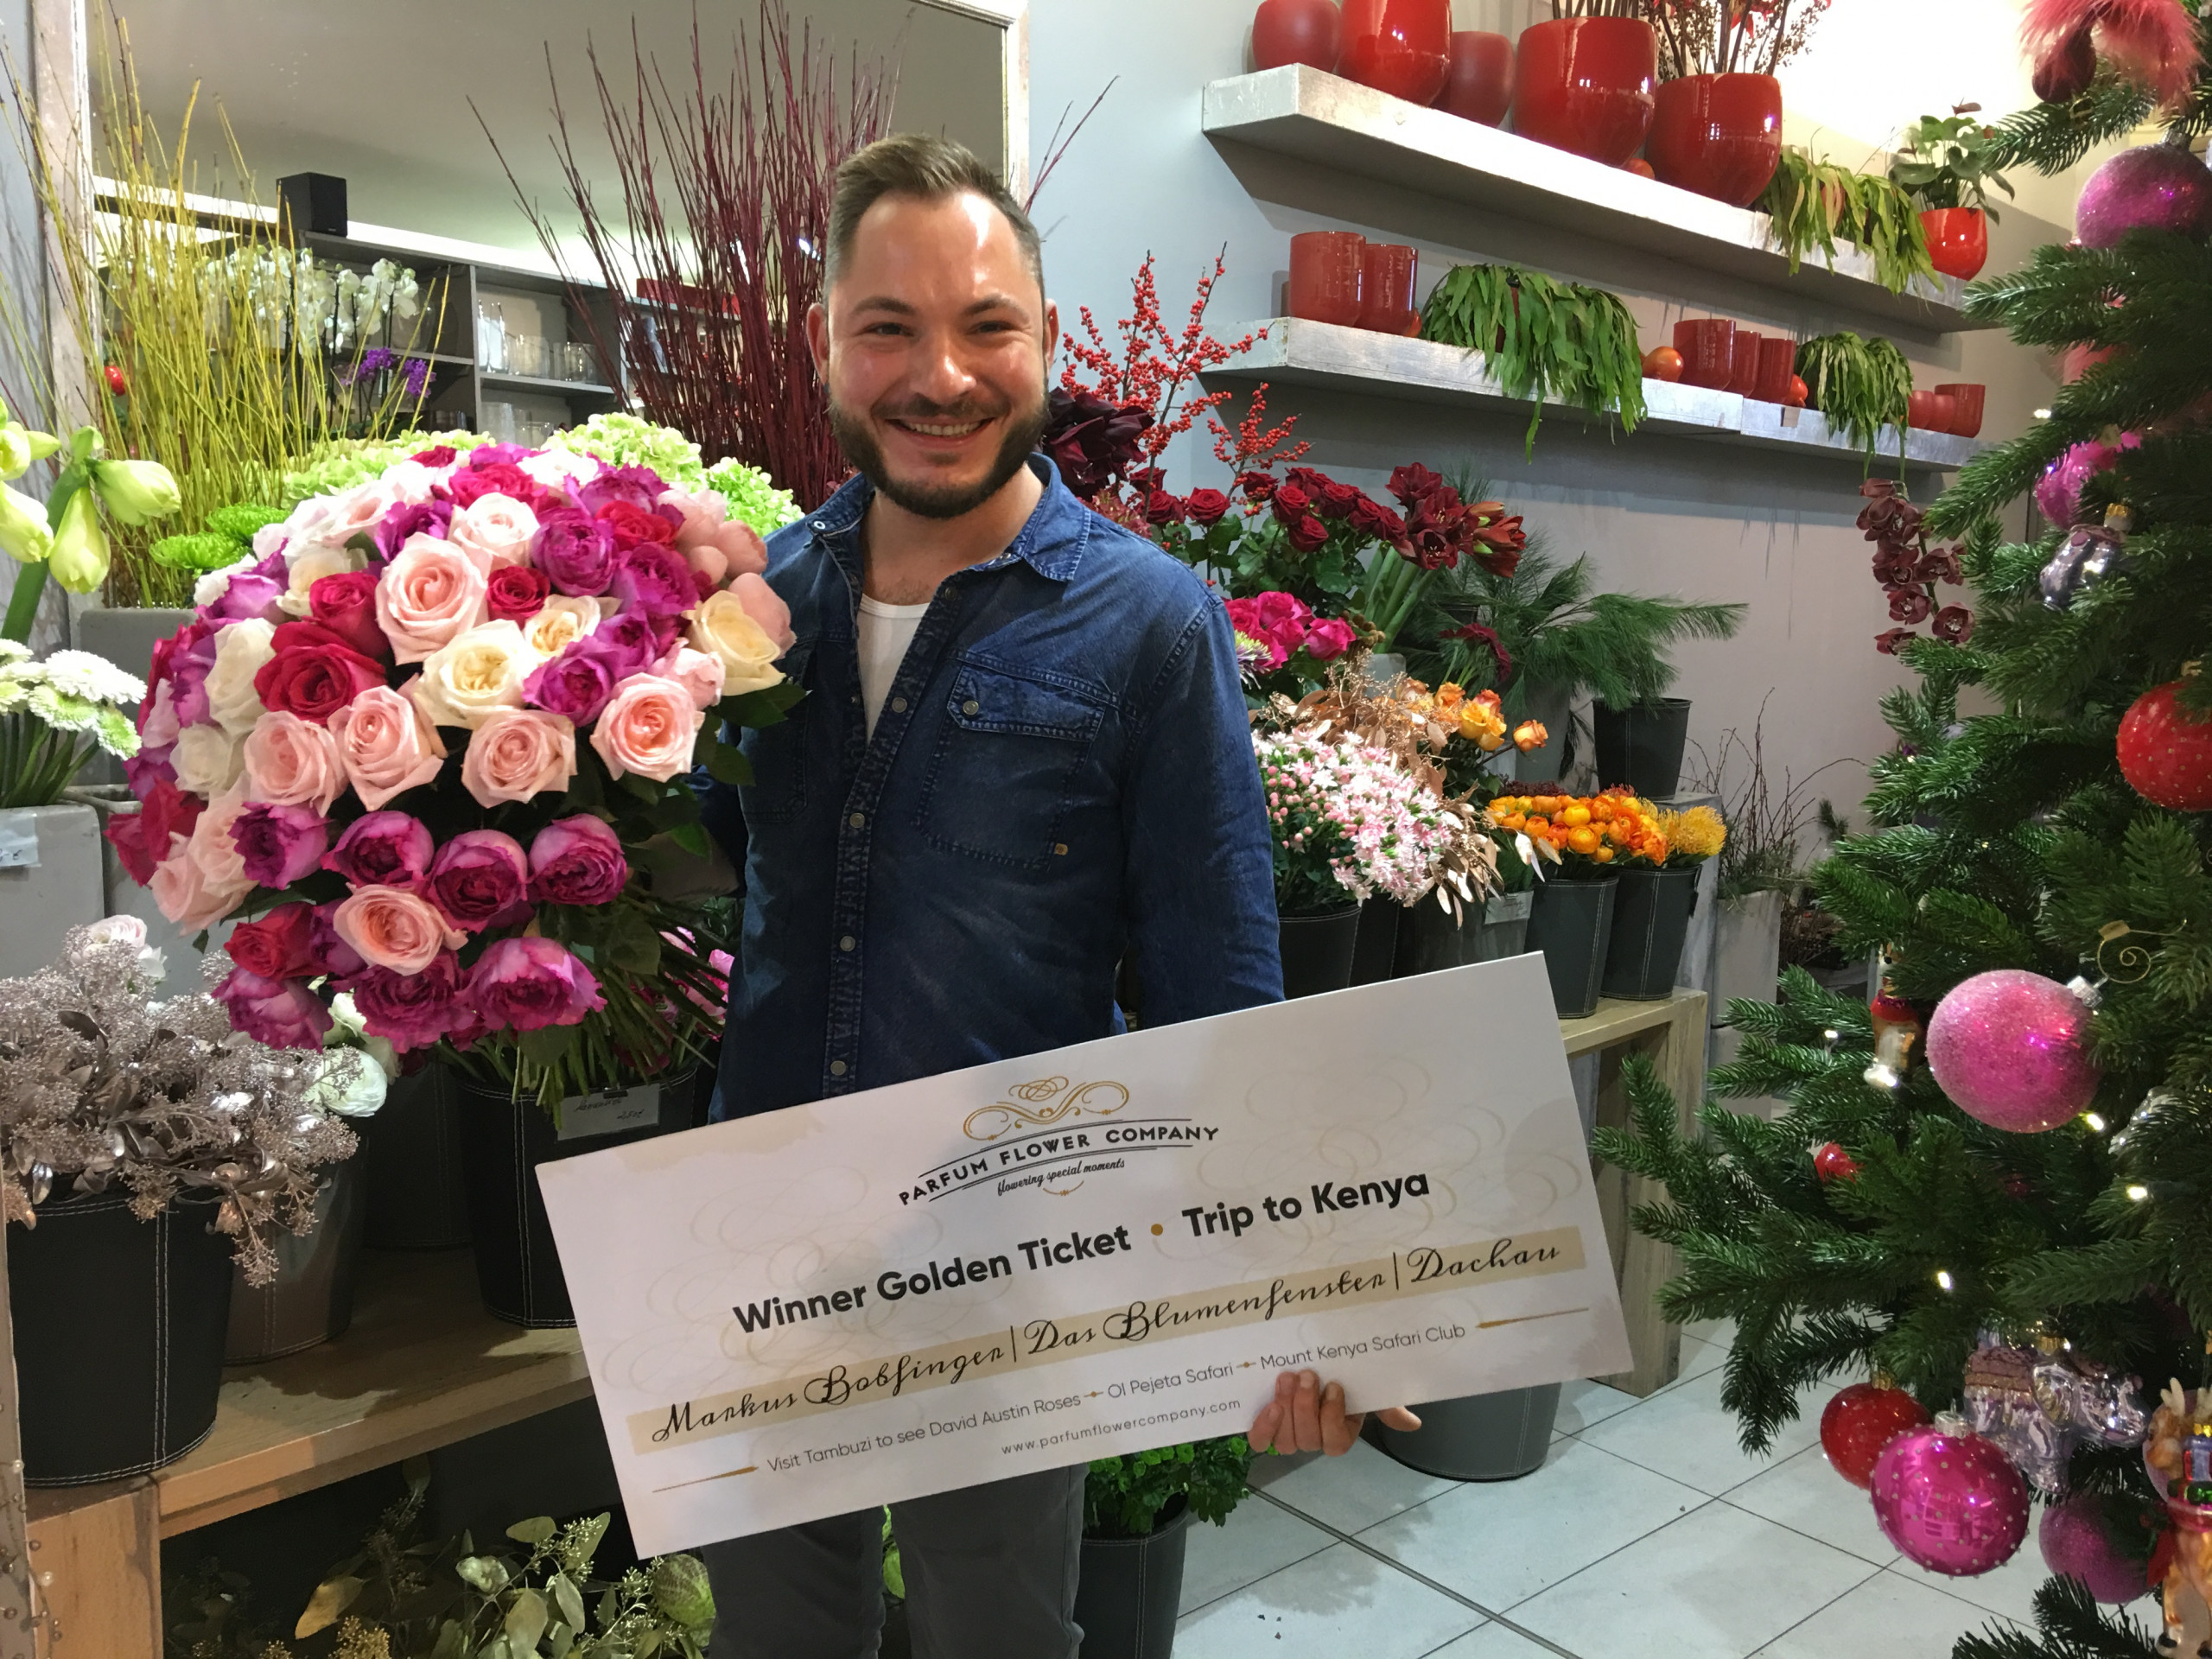 Golden Ticket winner Parfum Flower Company Markus Bobfinger